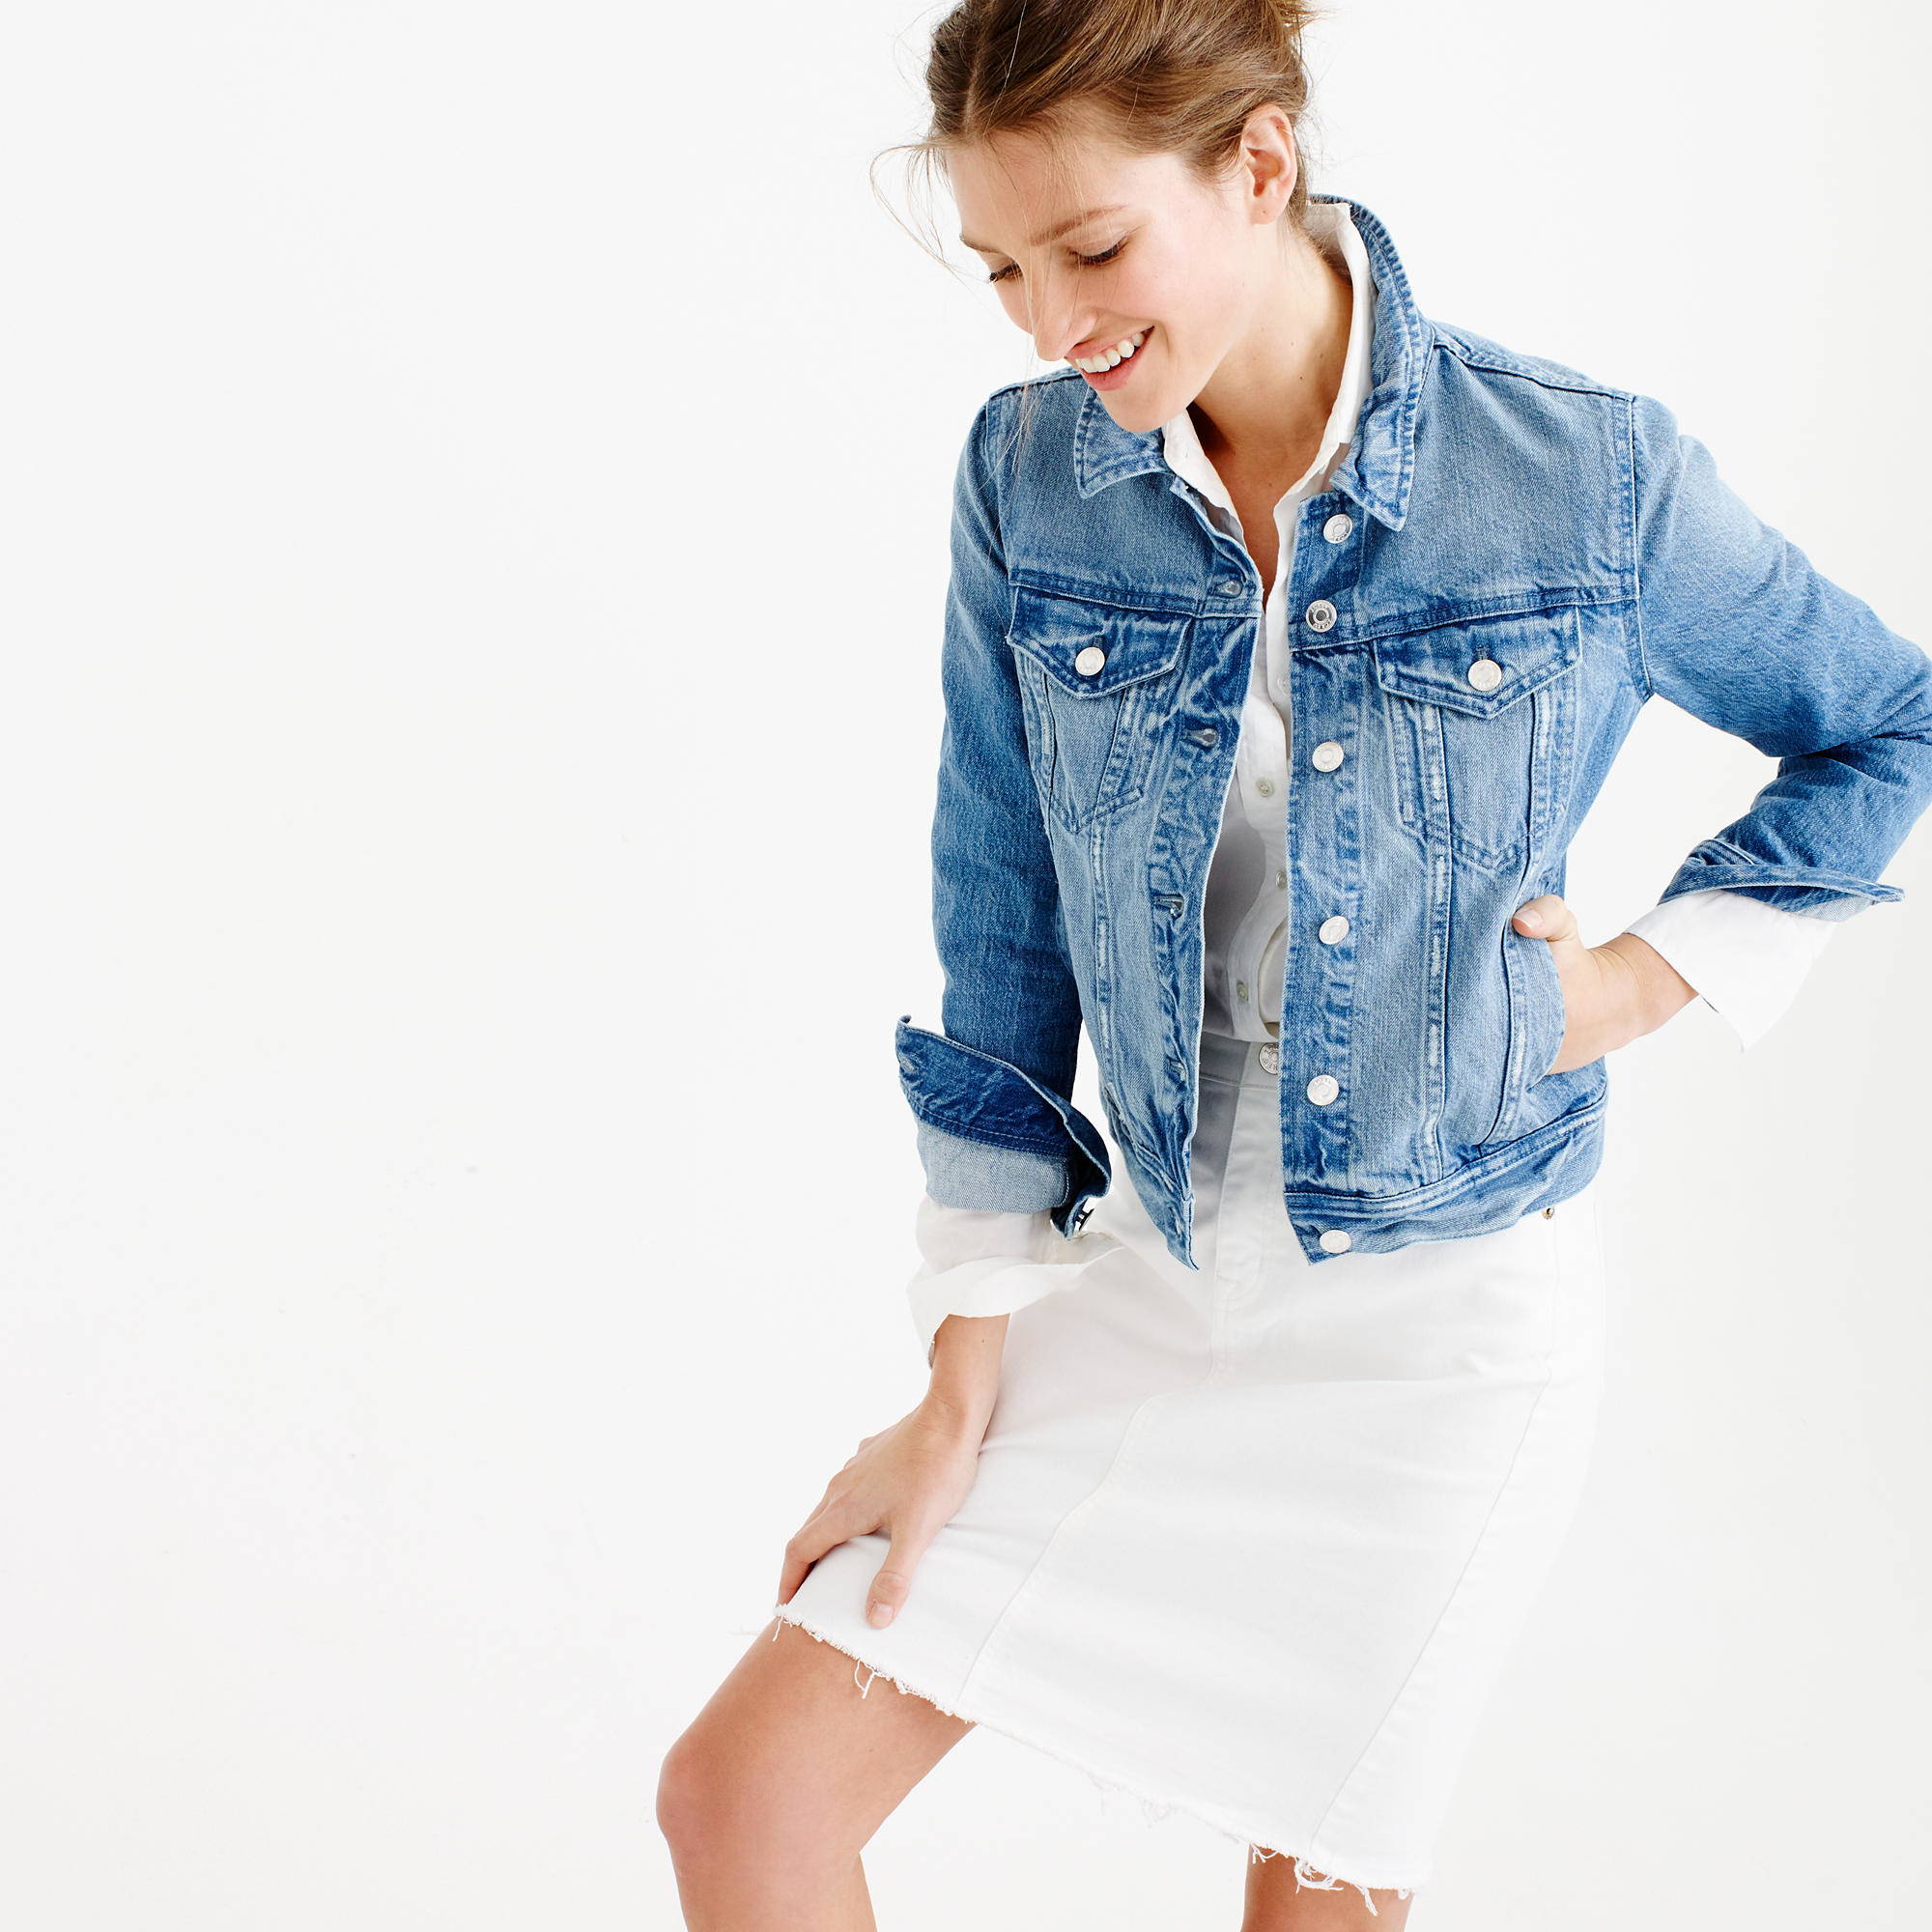 Jcrew Denim Jacket In Holston Wash In Blue  Lyst-6310